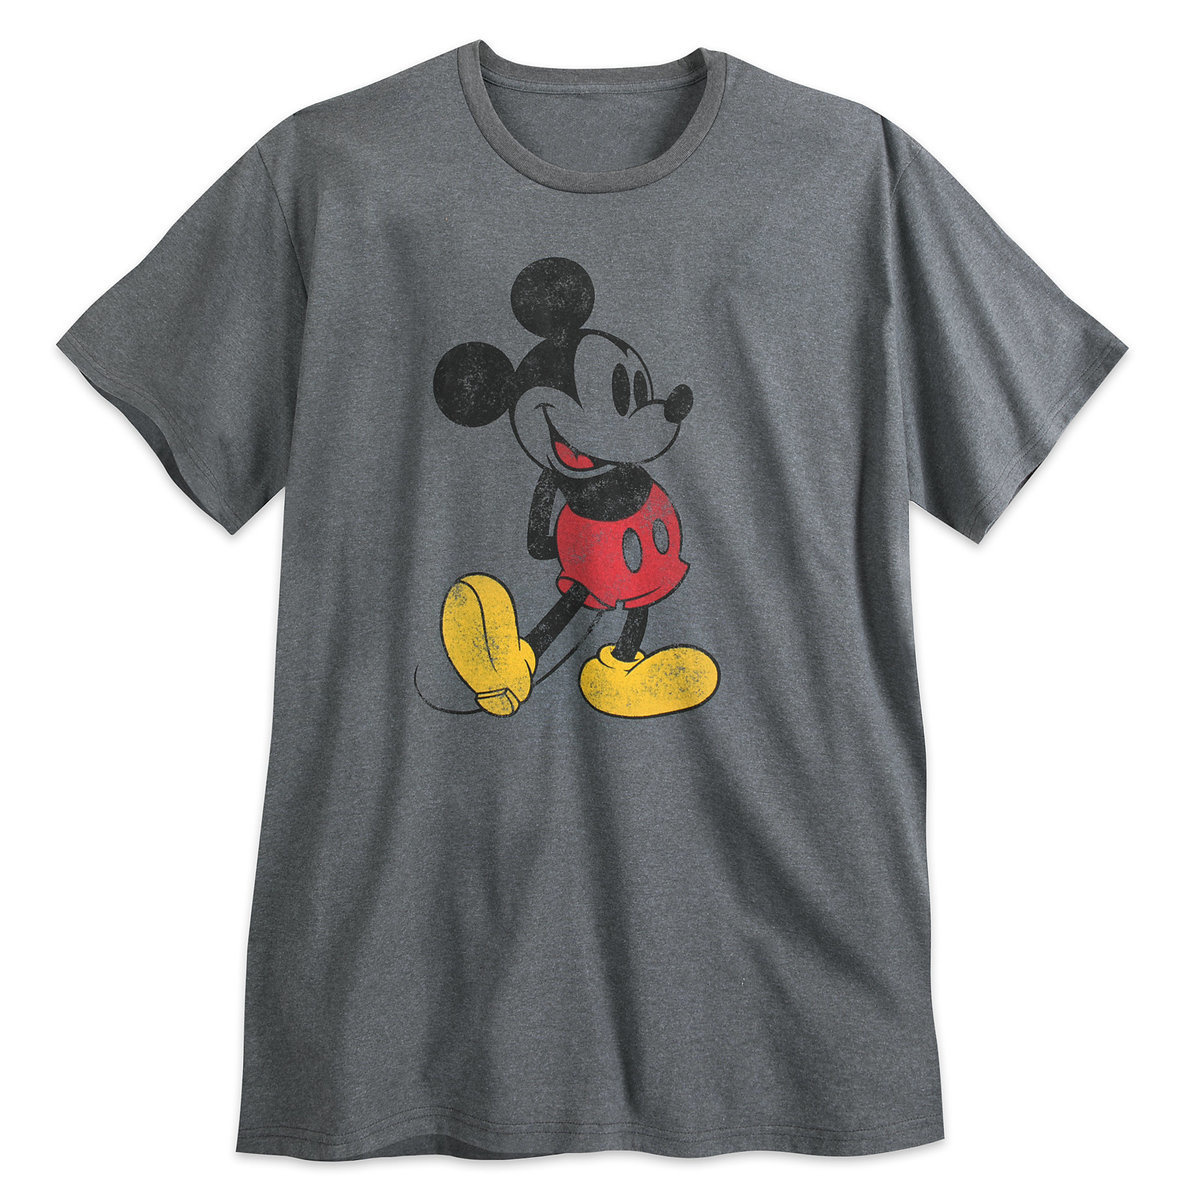 ceeace420f26 Product Image of Mickey Mouse Classic Tee for Men - Plus Size # 1